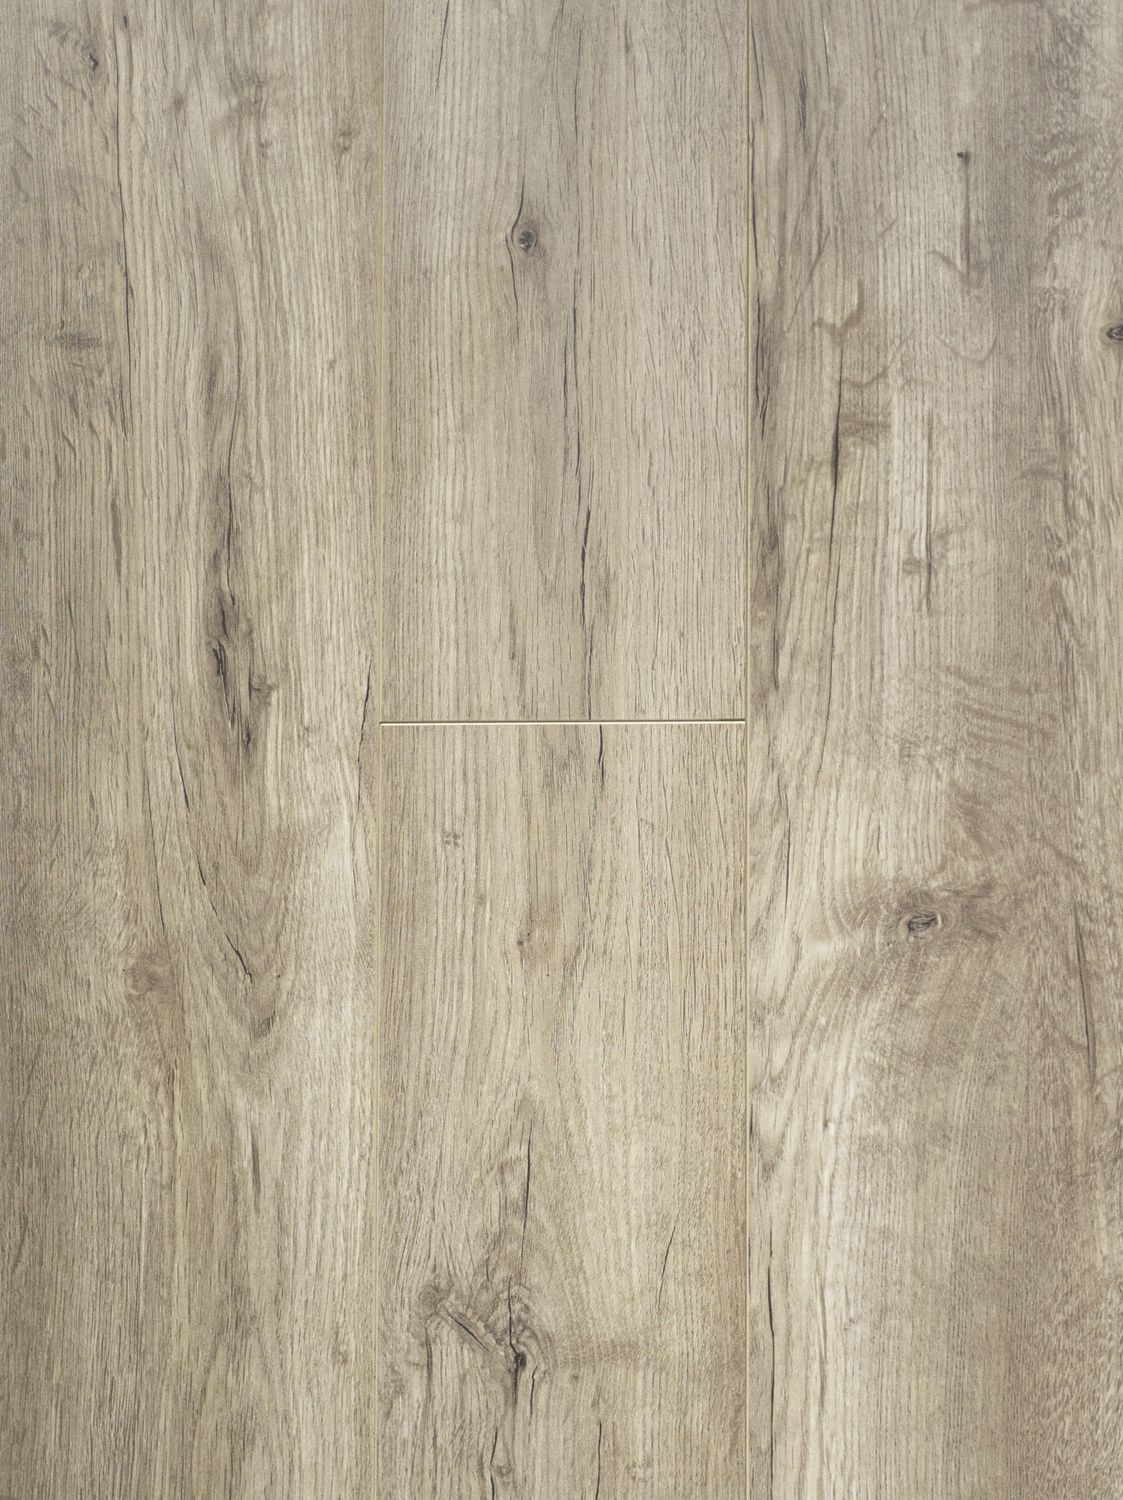 w floors ca in pergo laminate plank oak l haven north embossed wood ft x flooring